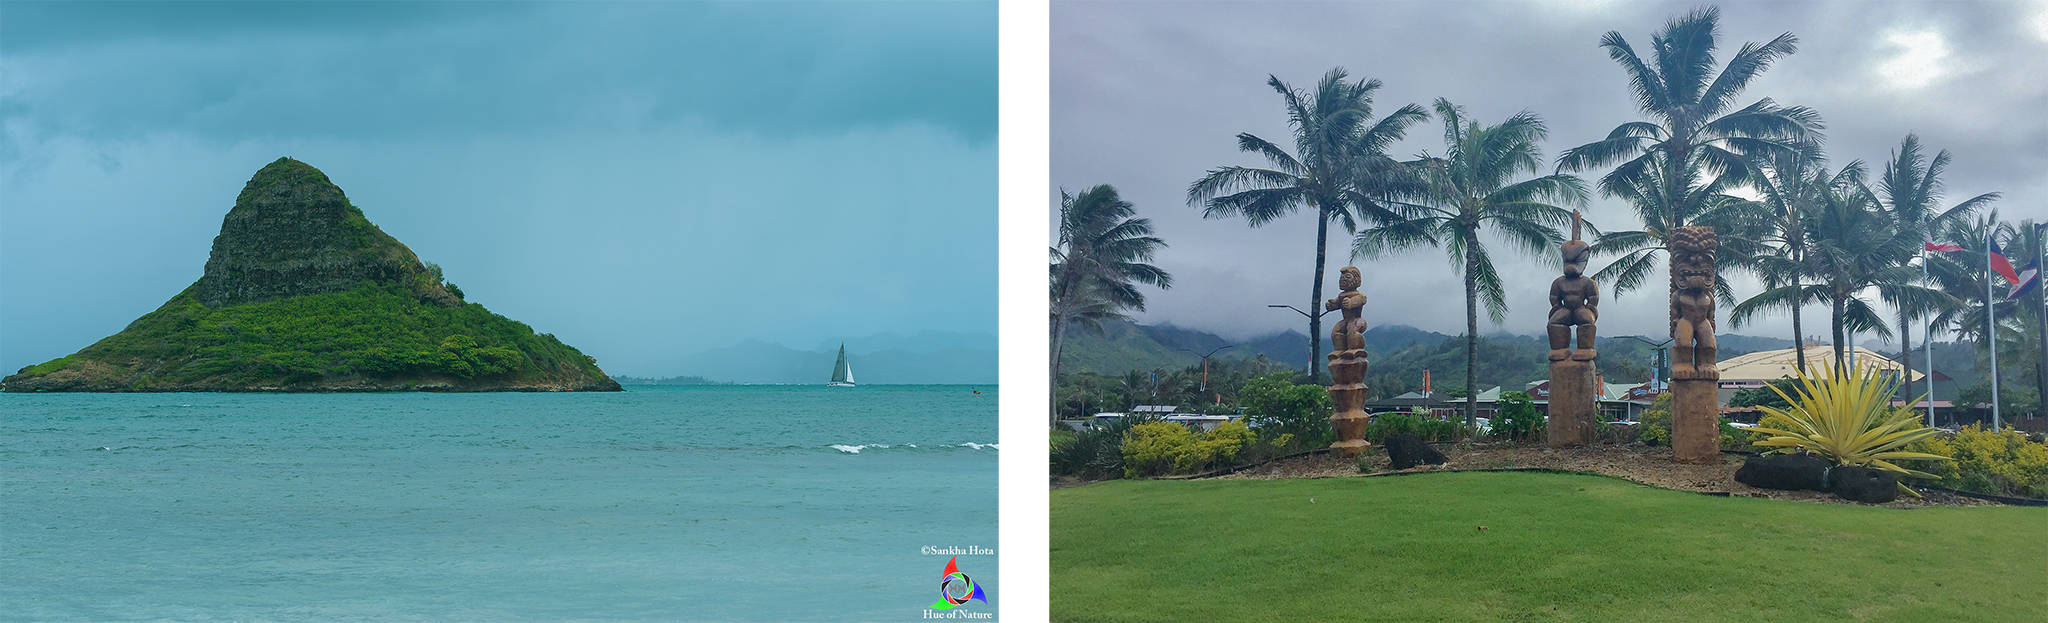 Chinaman's hat (left) and Maui art near the entrance of Polynesian Cultural Center (right)